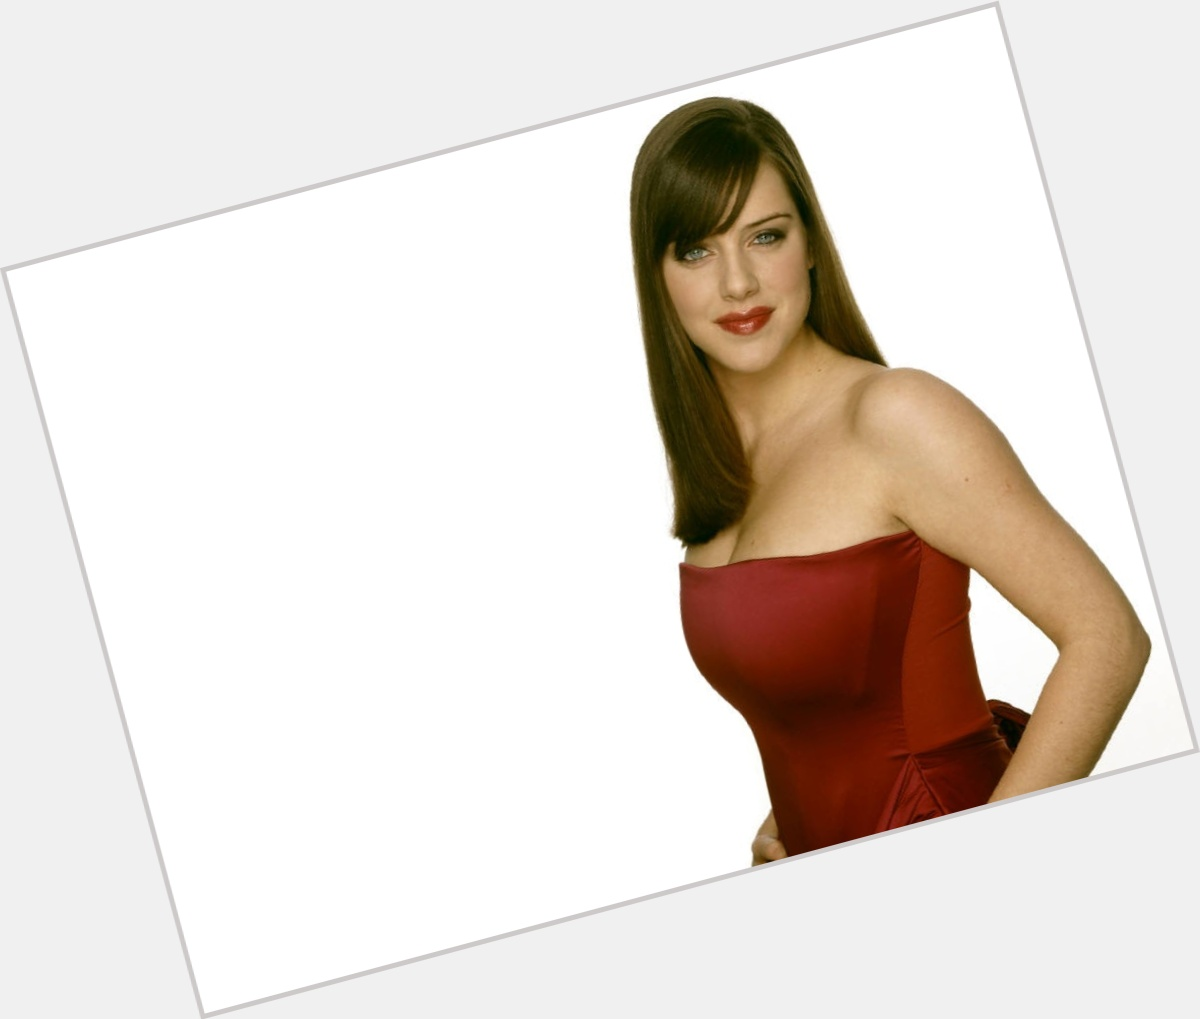 michelle ryan doctor who 7